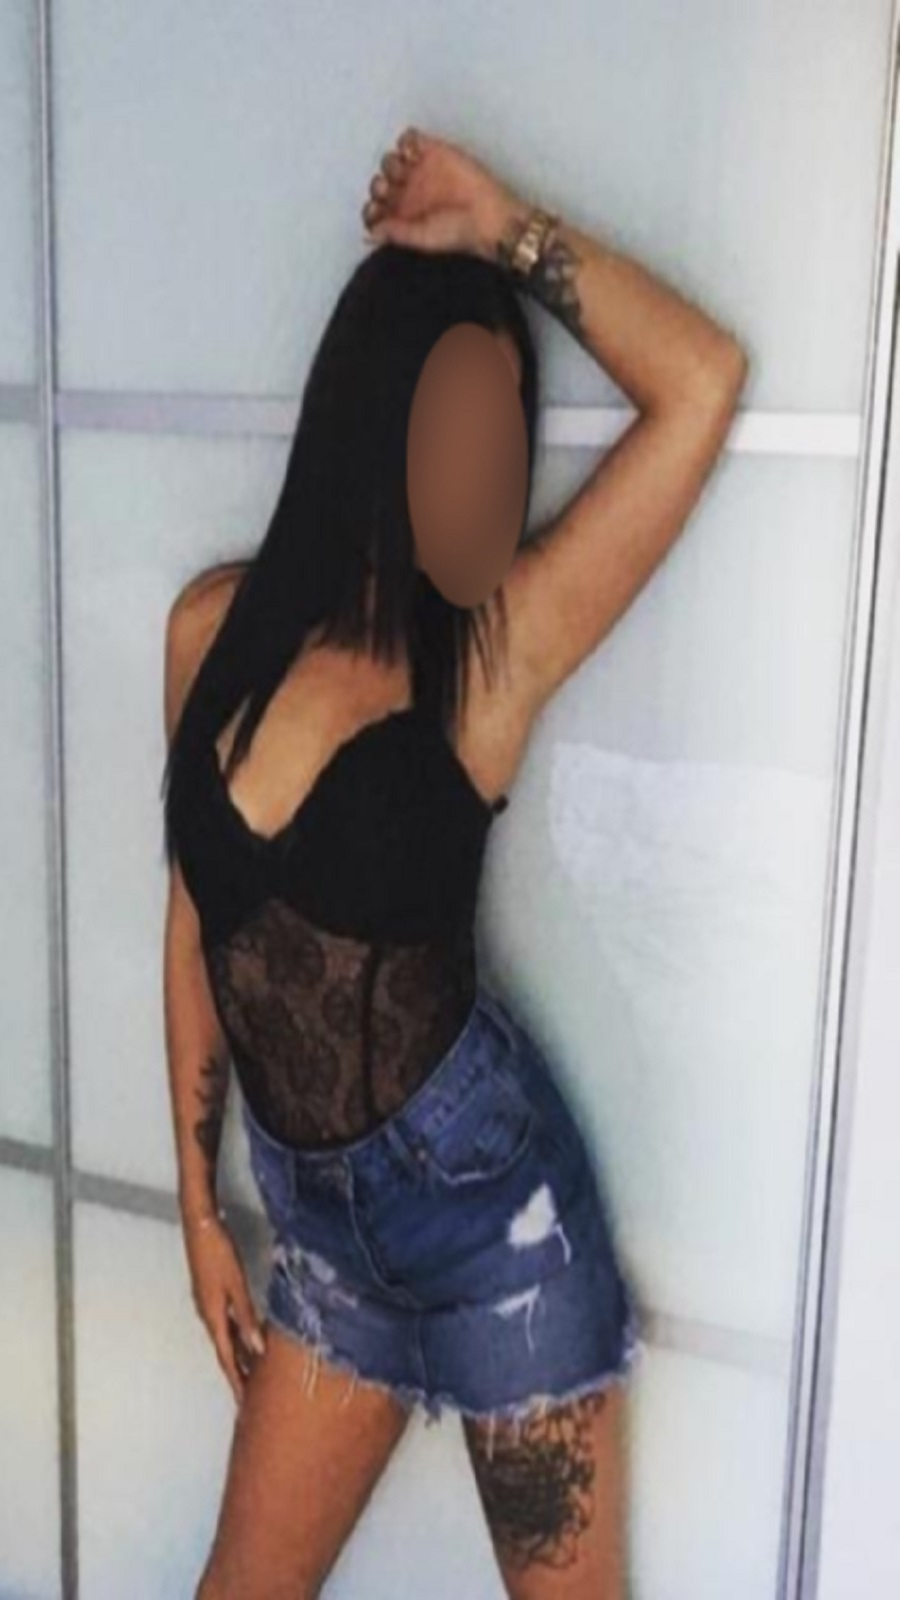 If you are looking for the perfect companion tonight give us a call on 07412621234 to book Holly for the best night of your life.